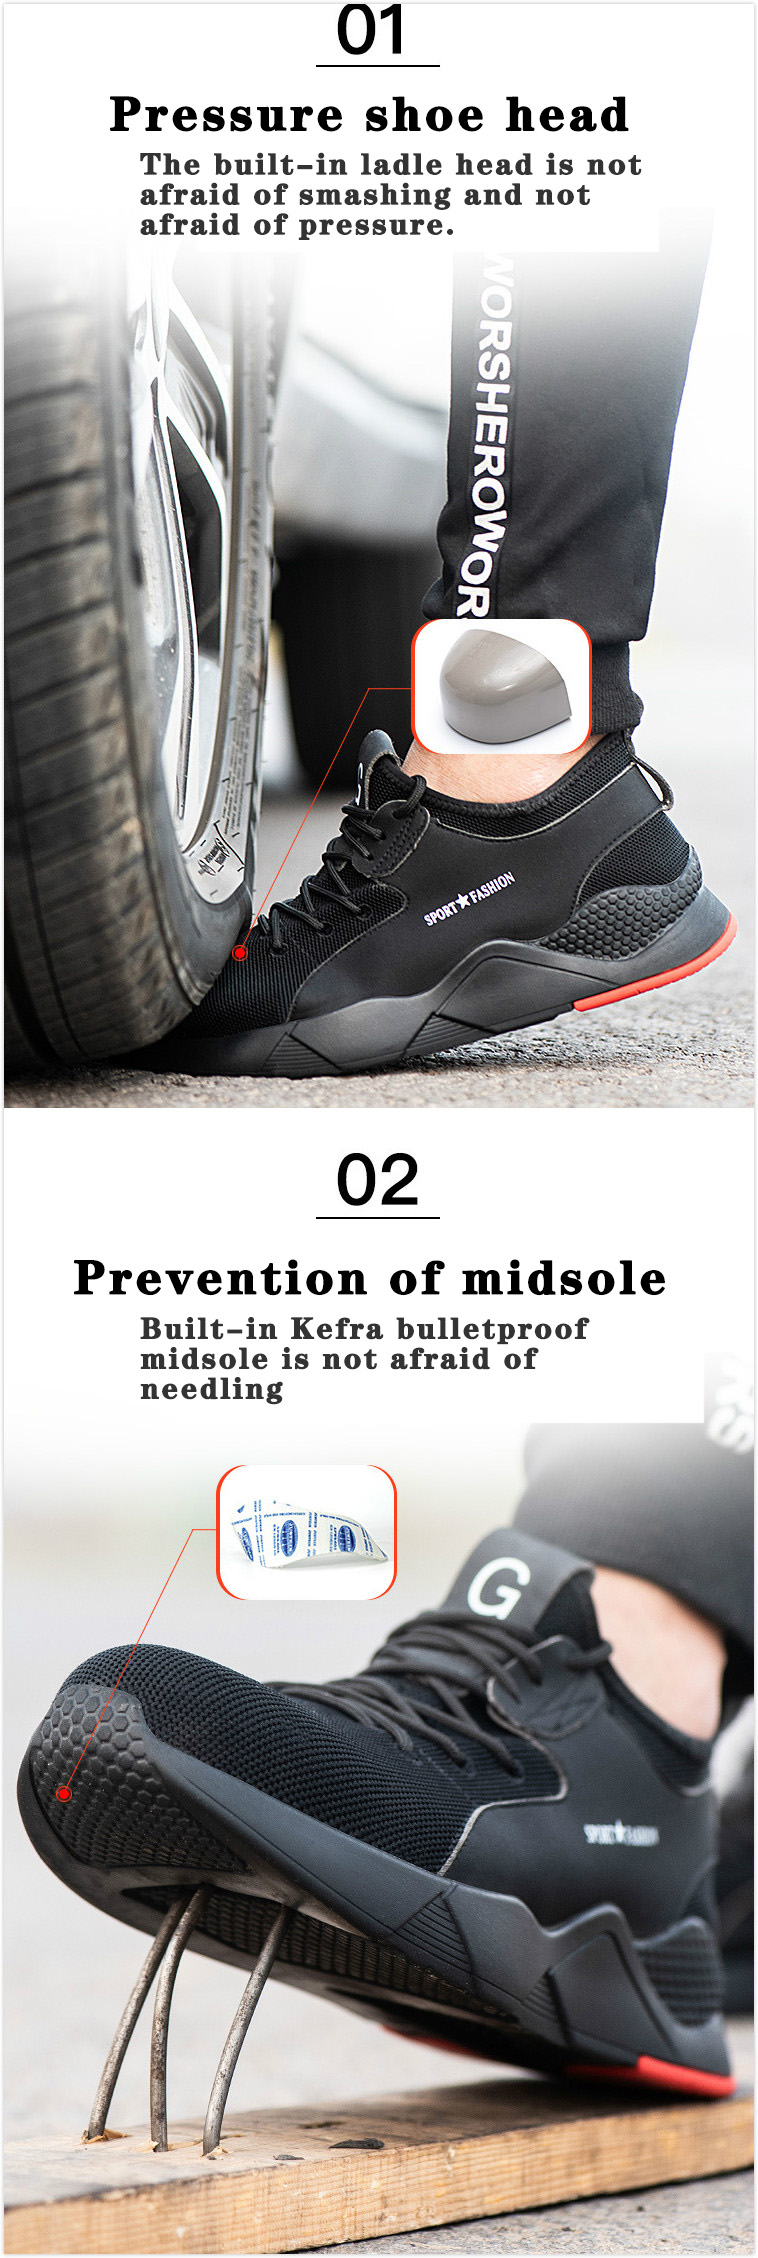 TZLBX-132 Fashionable steel toecap lightweight  work safety shoes